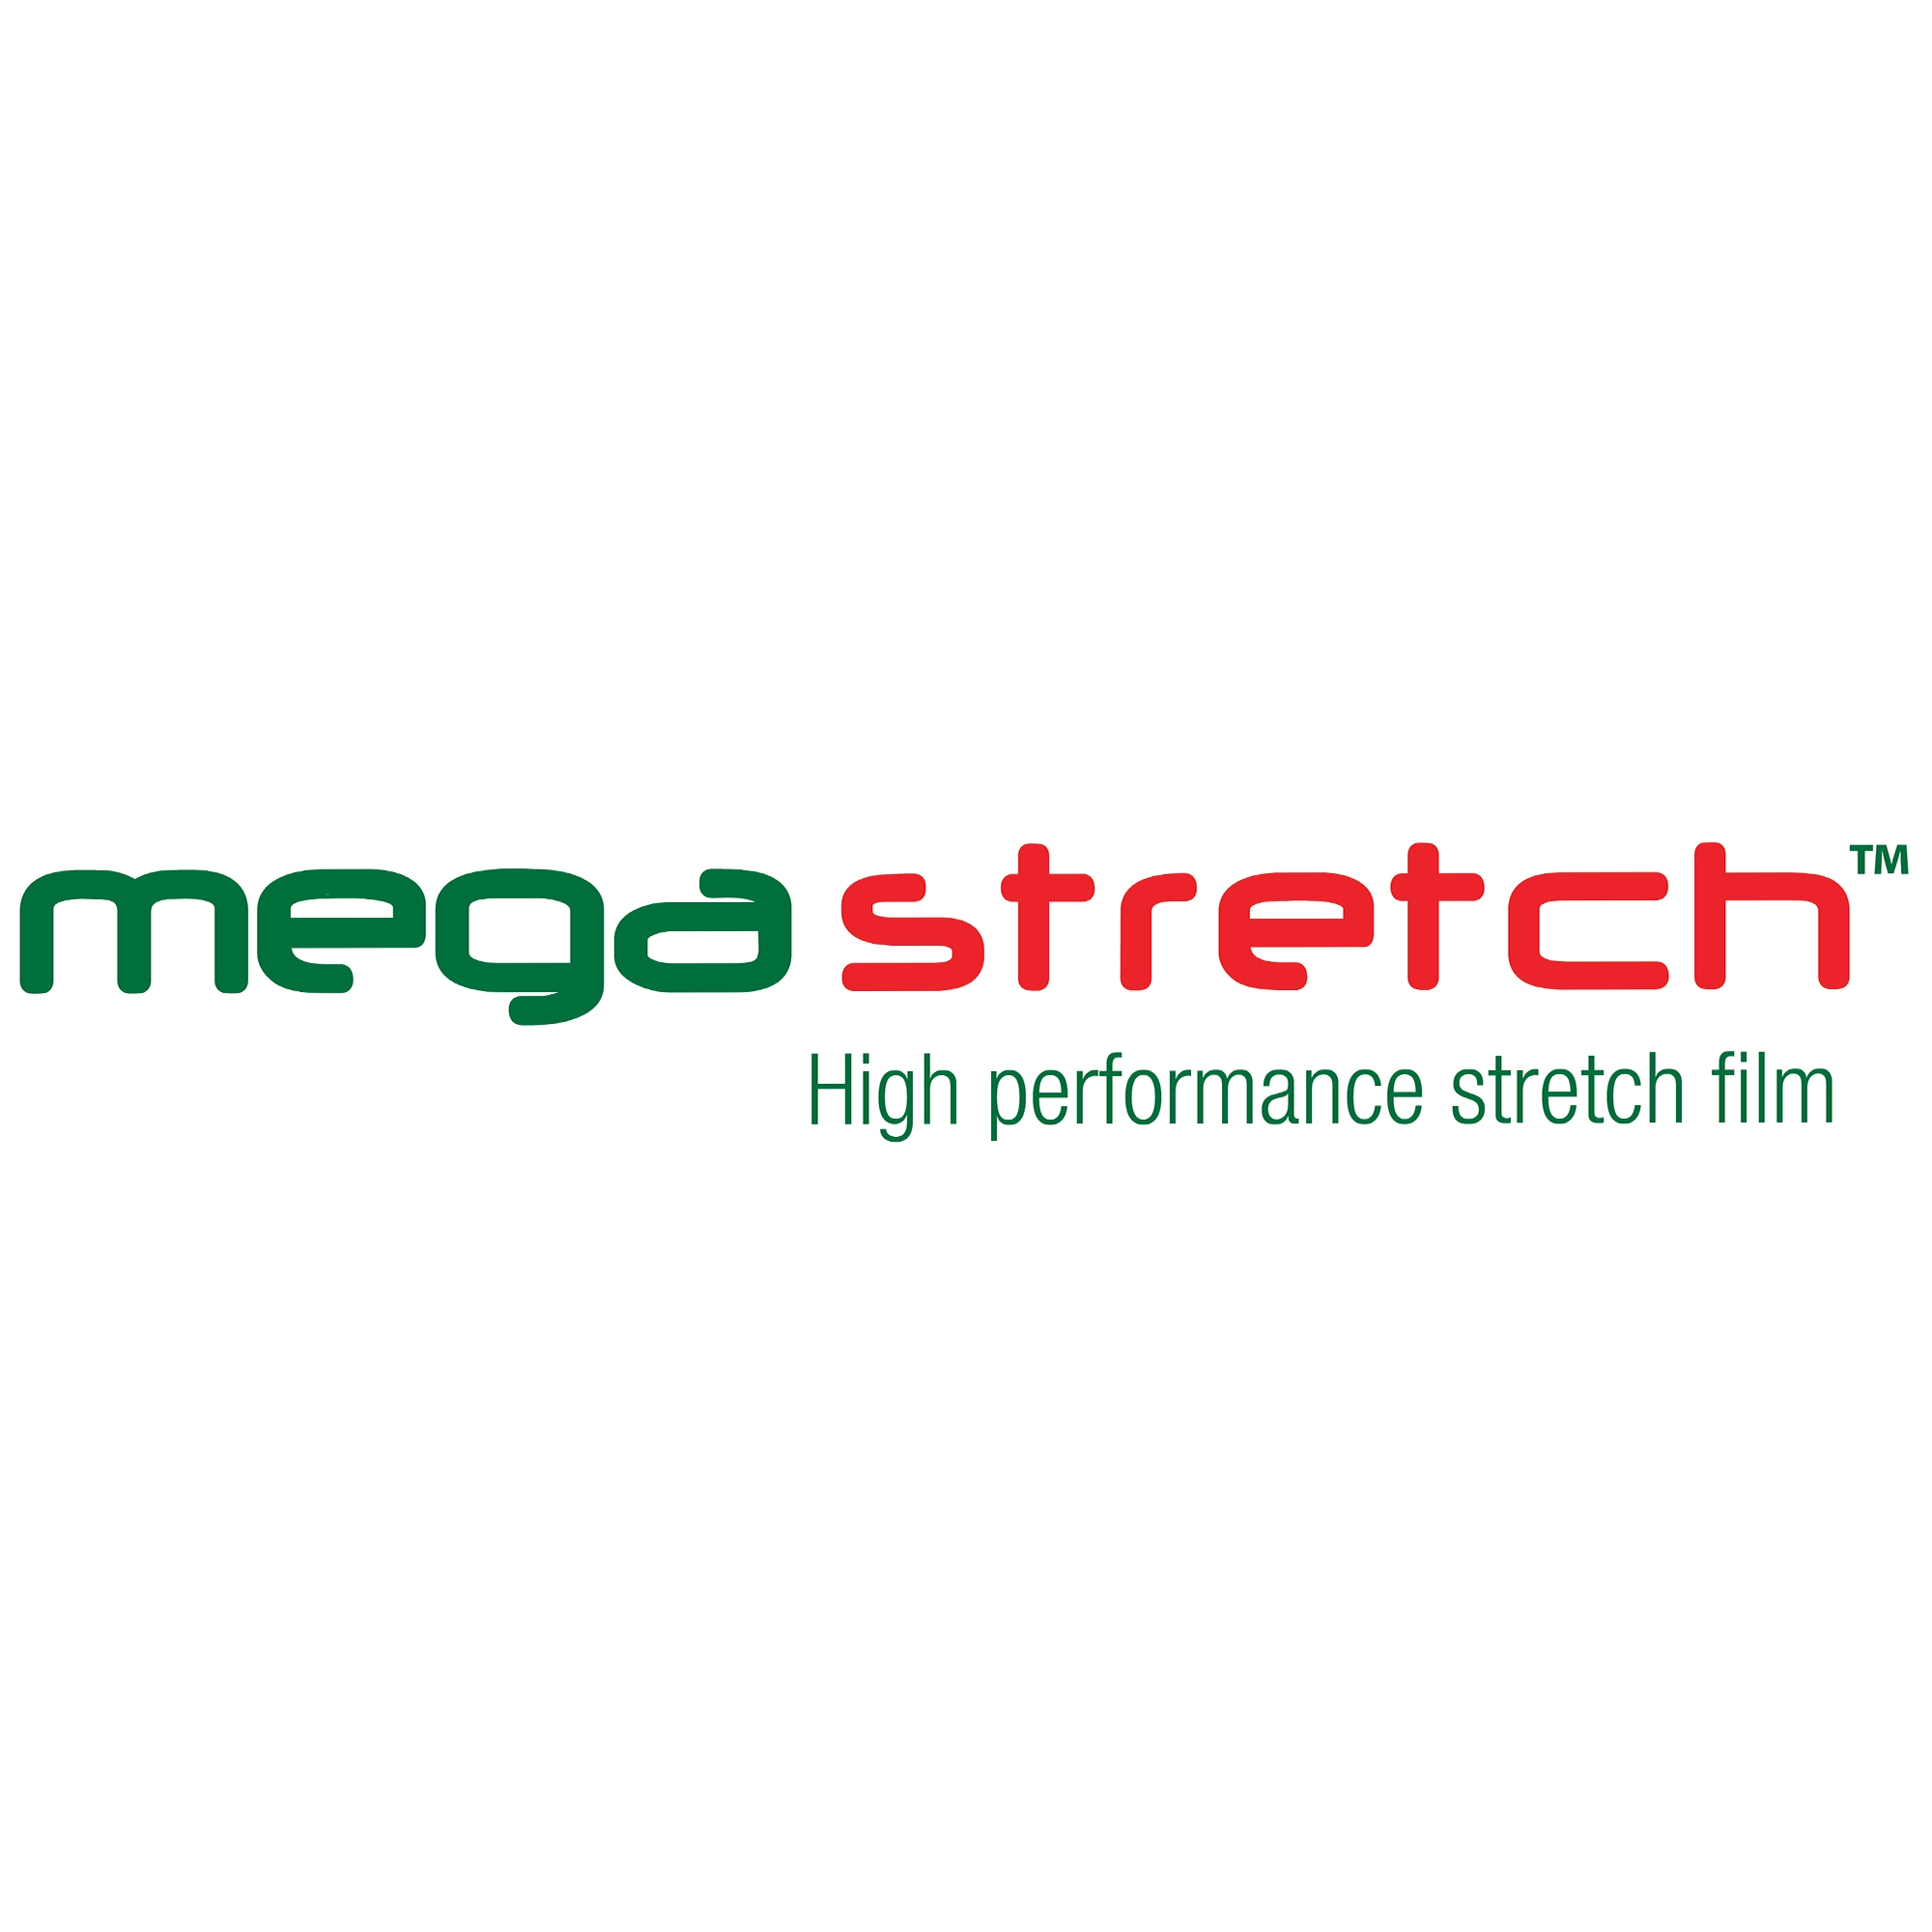 Megastretch